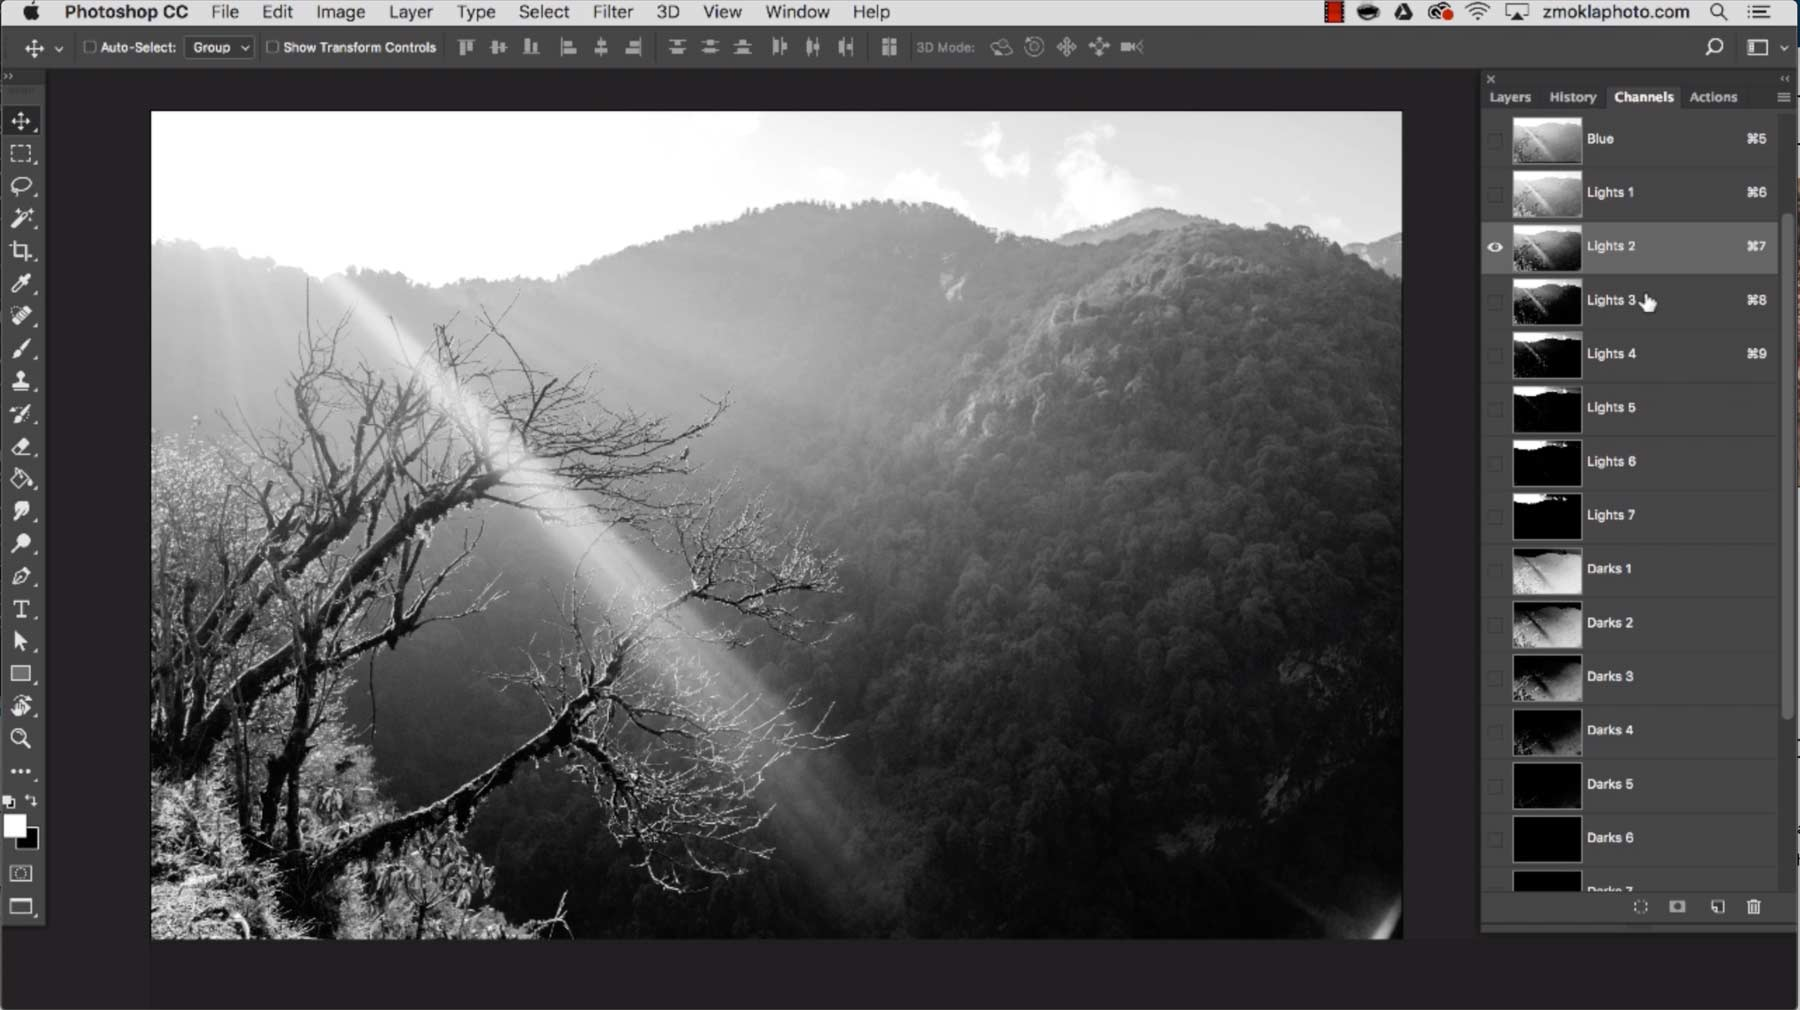 From raw to a perfect photo develop process like a pro